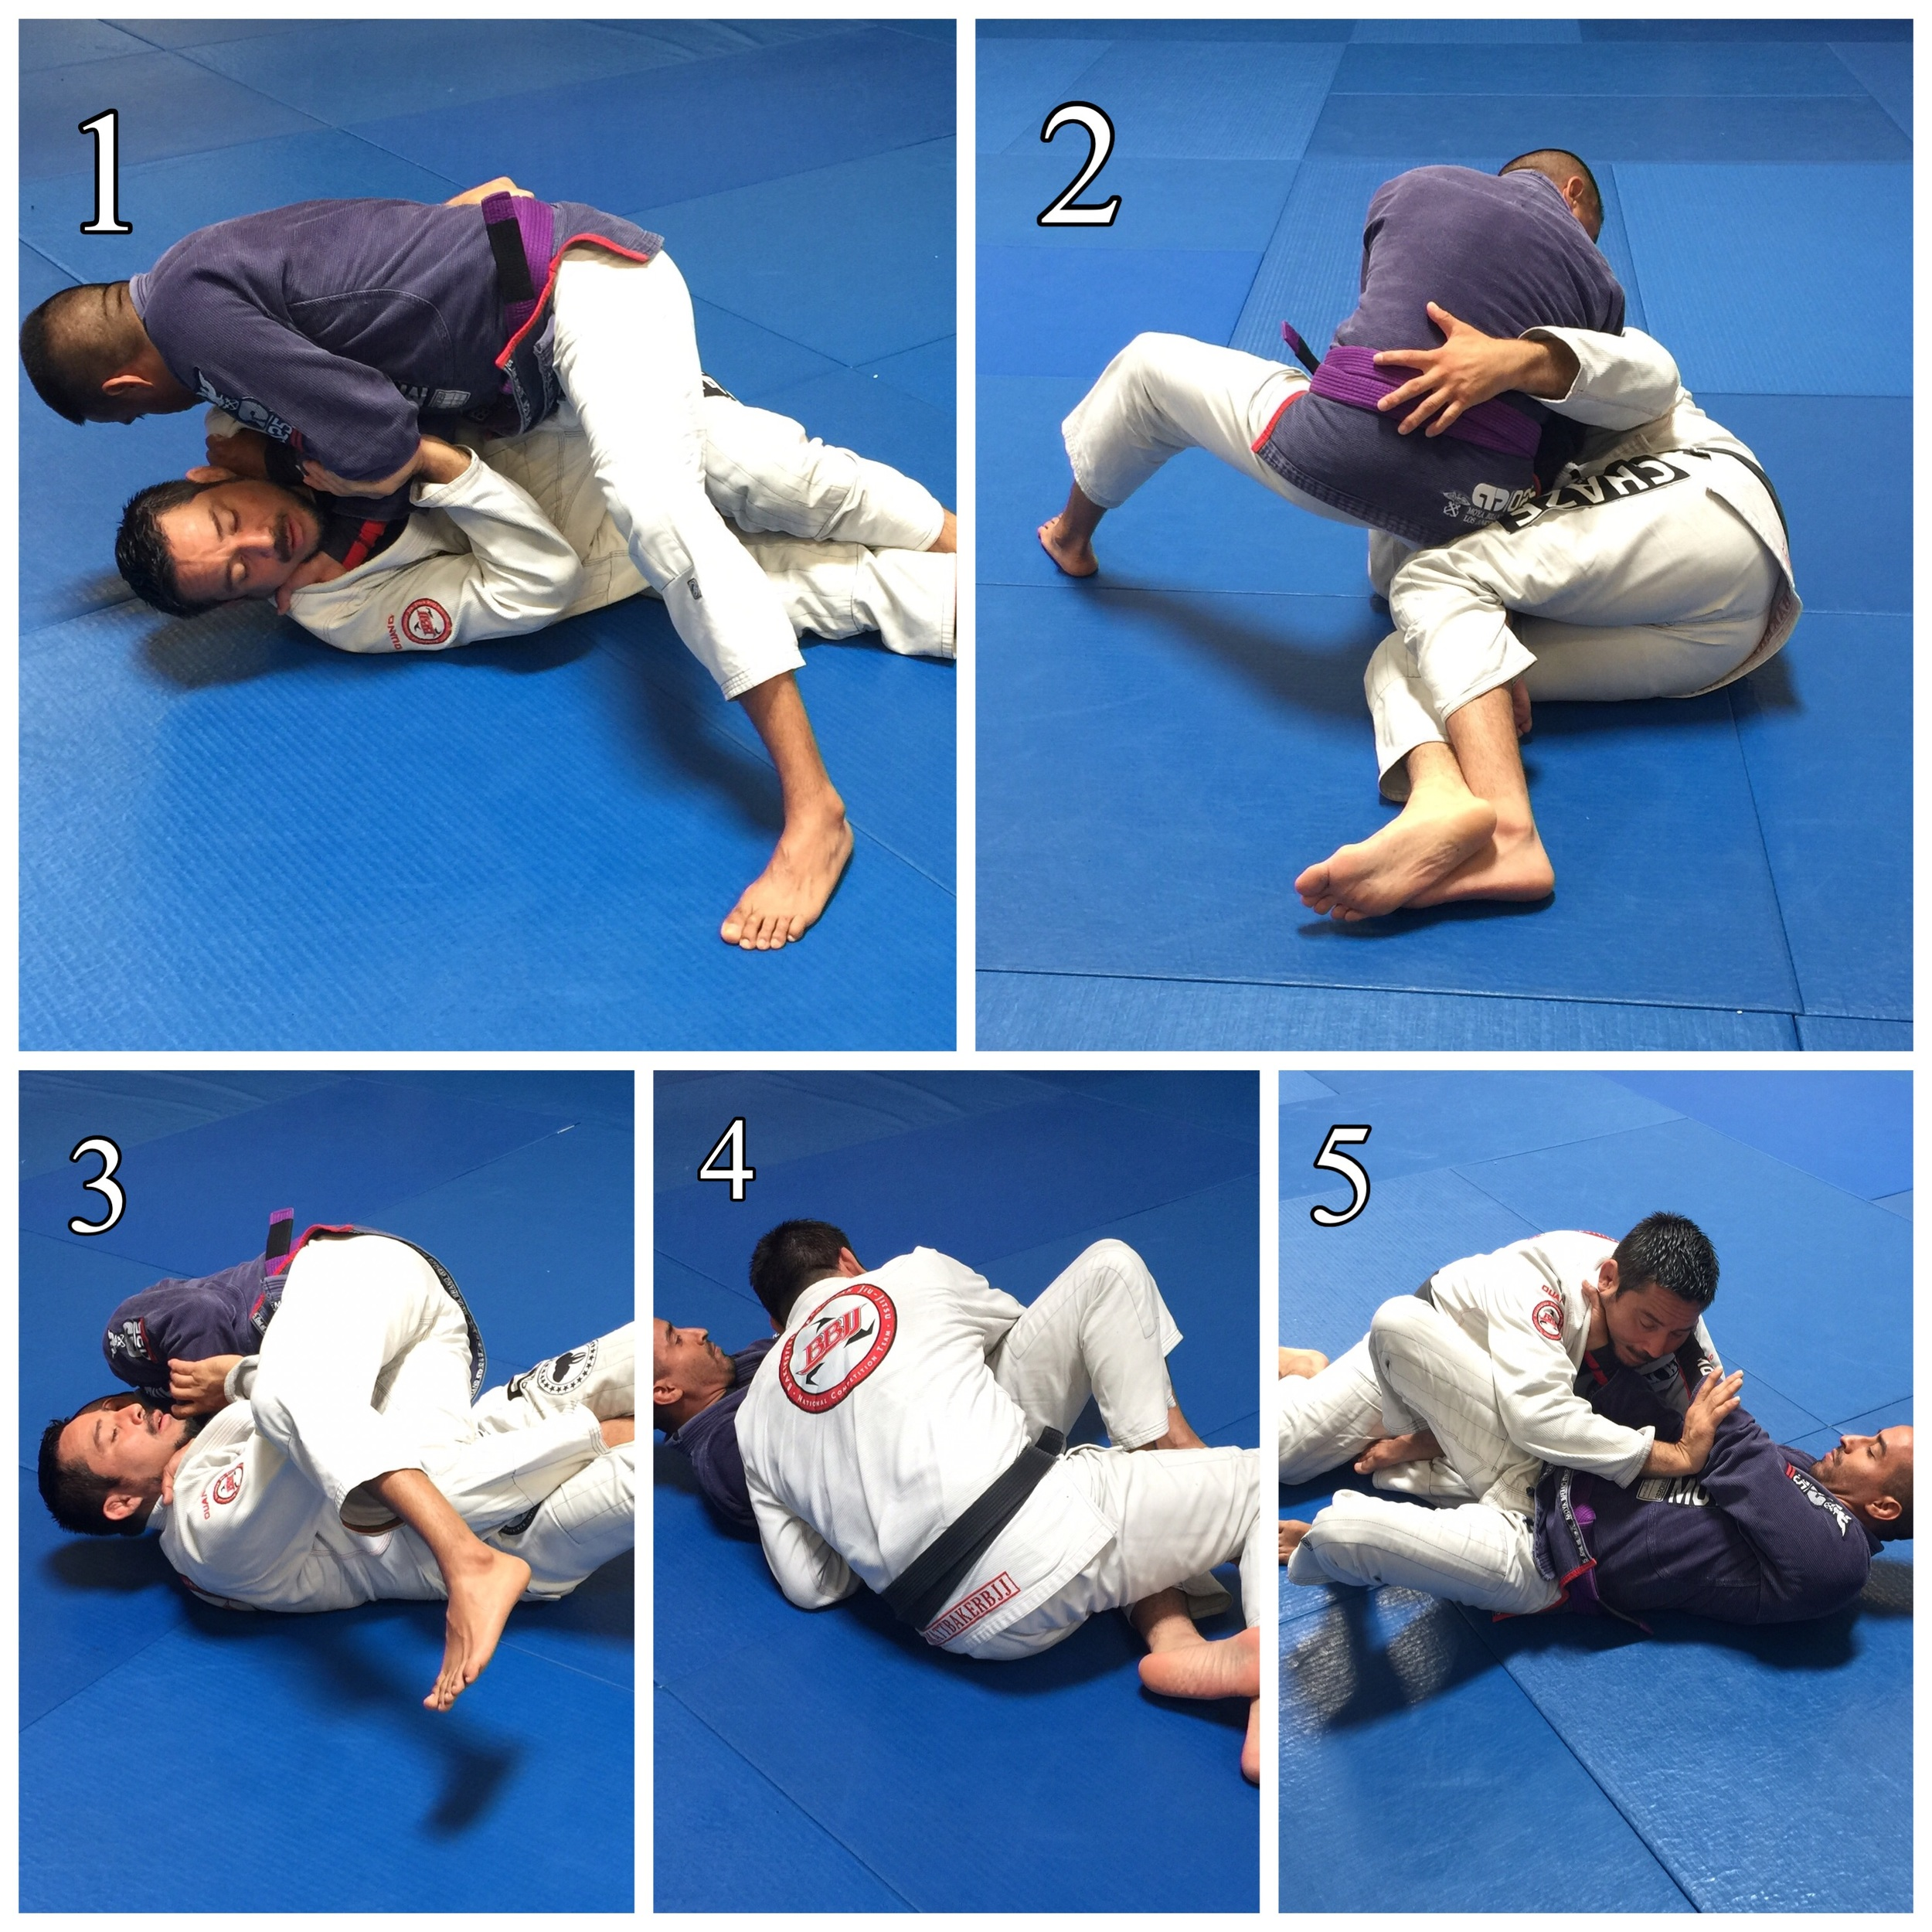 Step # 1  Frame against the Choke.  Step # 2   Connect hips and Grab the belt.  Step # 3  Slide in hips.   Step # 4  Bump and role back.   Stop # 5  Disconnect and back out of choke.